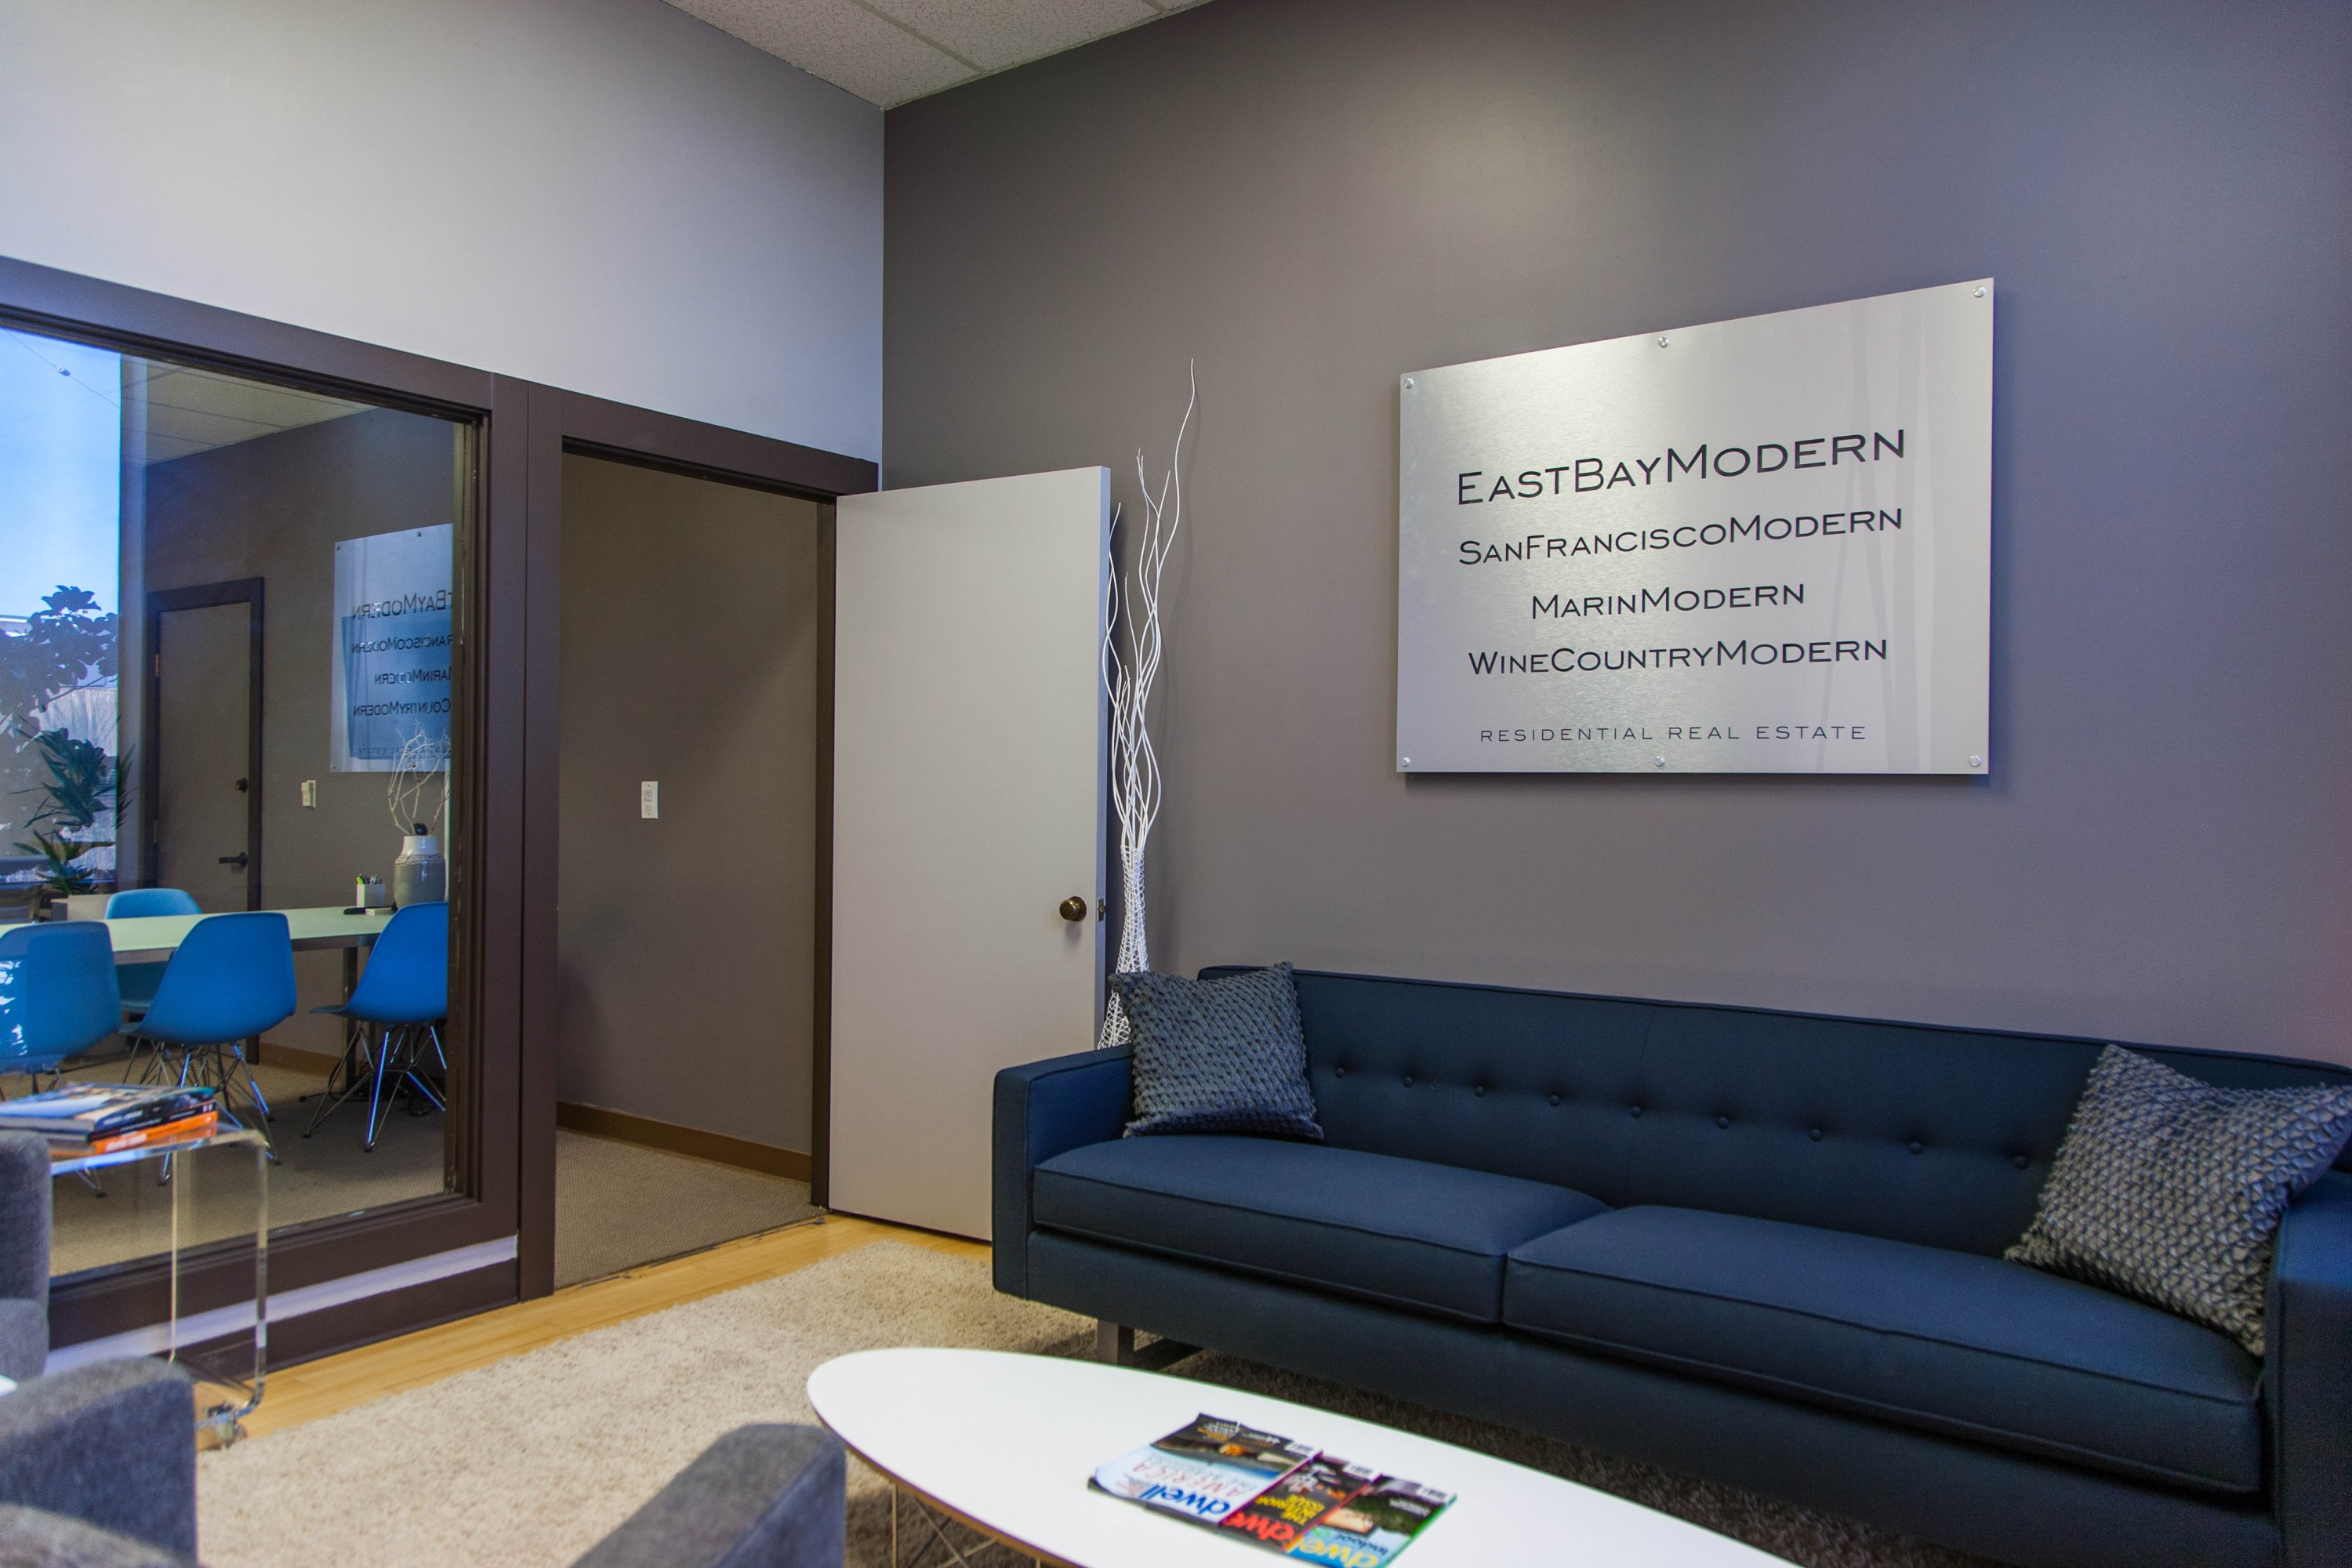 East bay modern real estate opens new office in oakland s jack london square neighborhood - Family office real estate ...